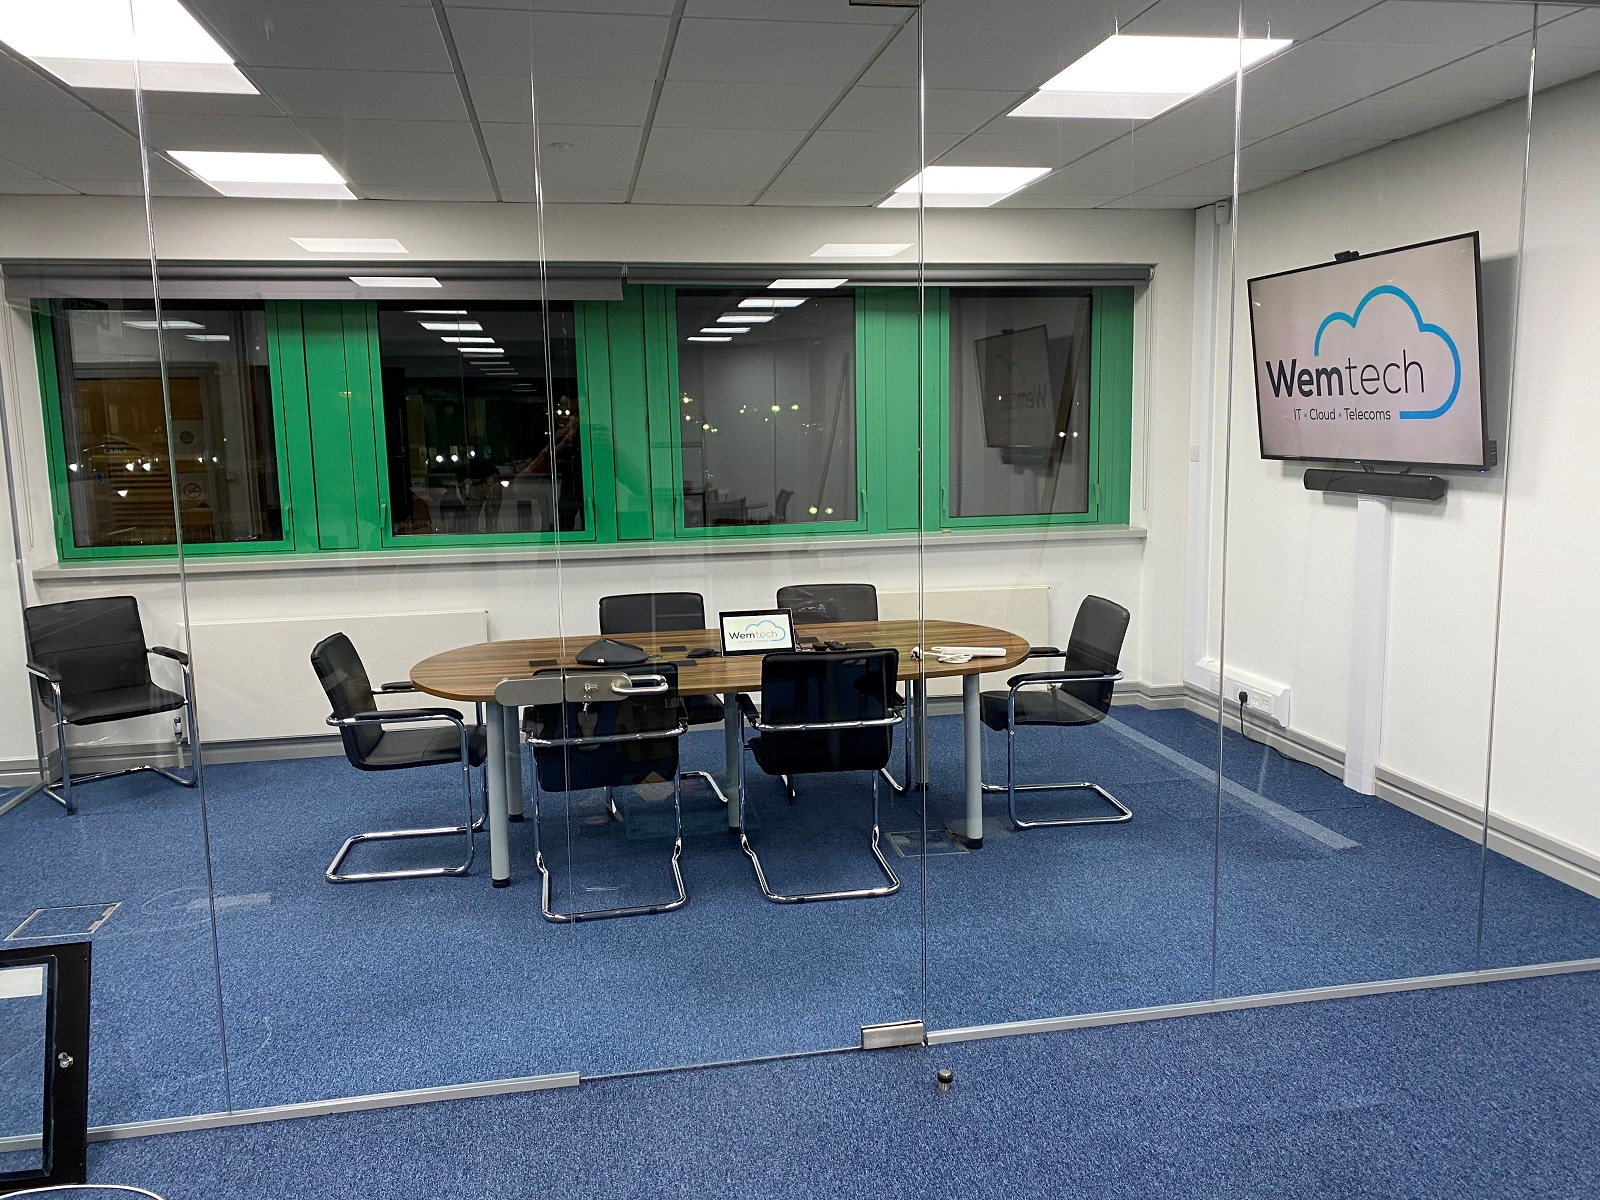 WemTech conference room interior